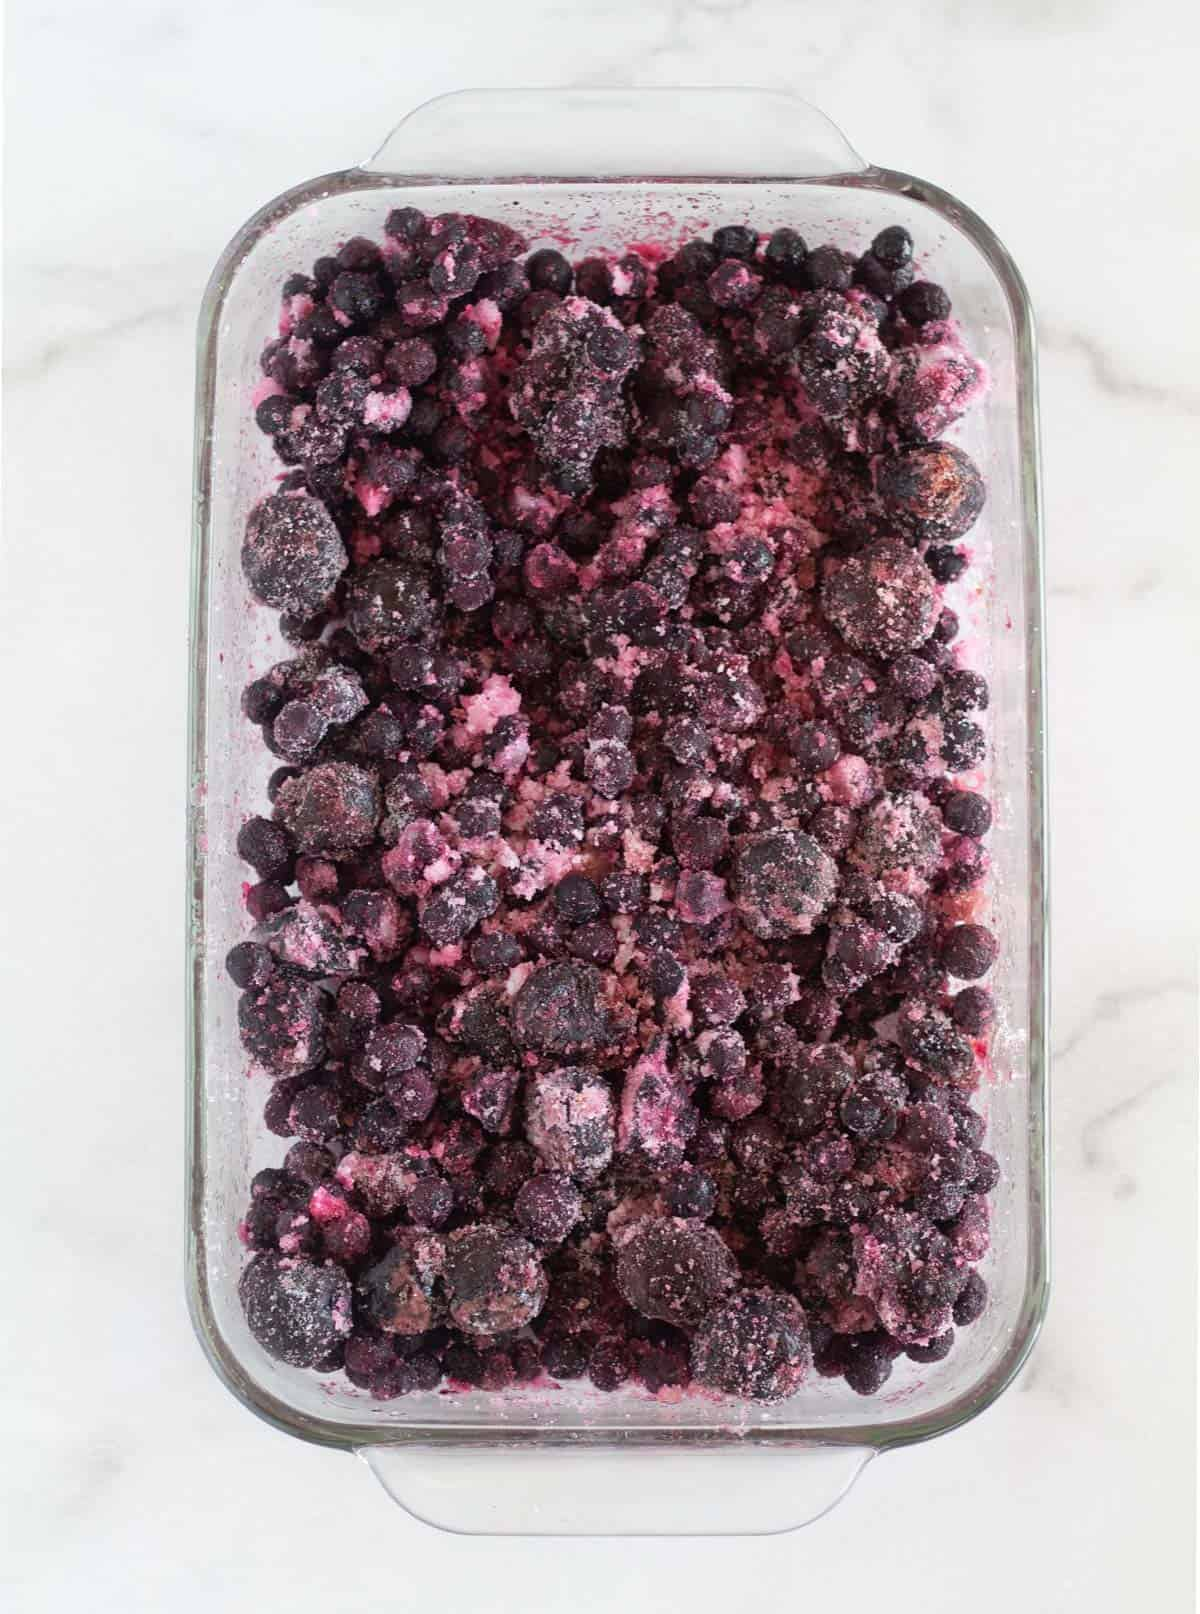 berries with sweetener and lemon juice in baking dish